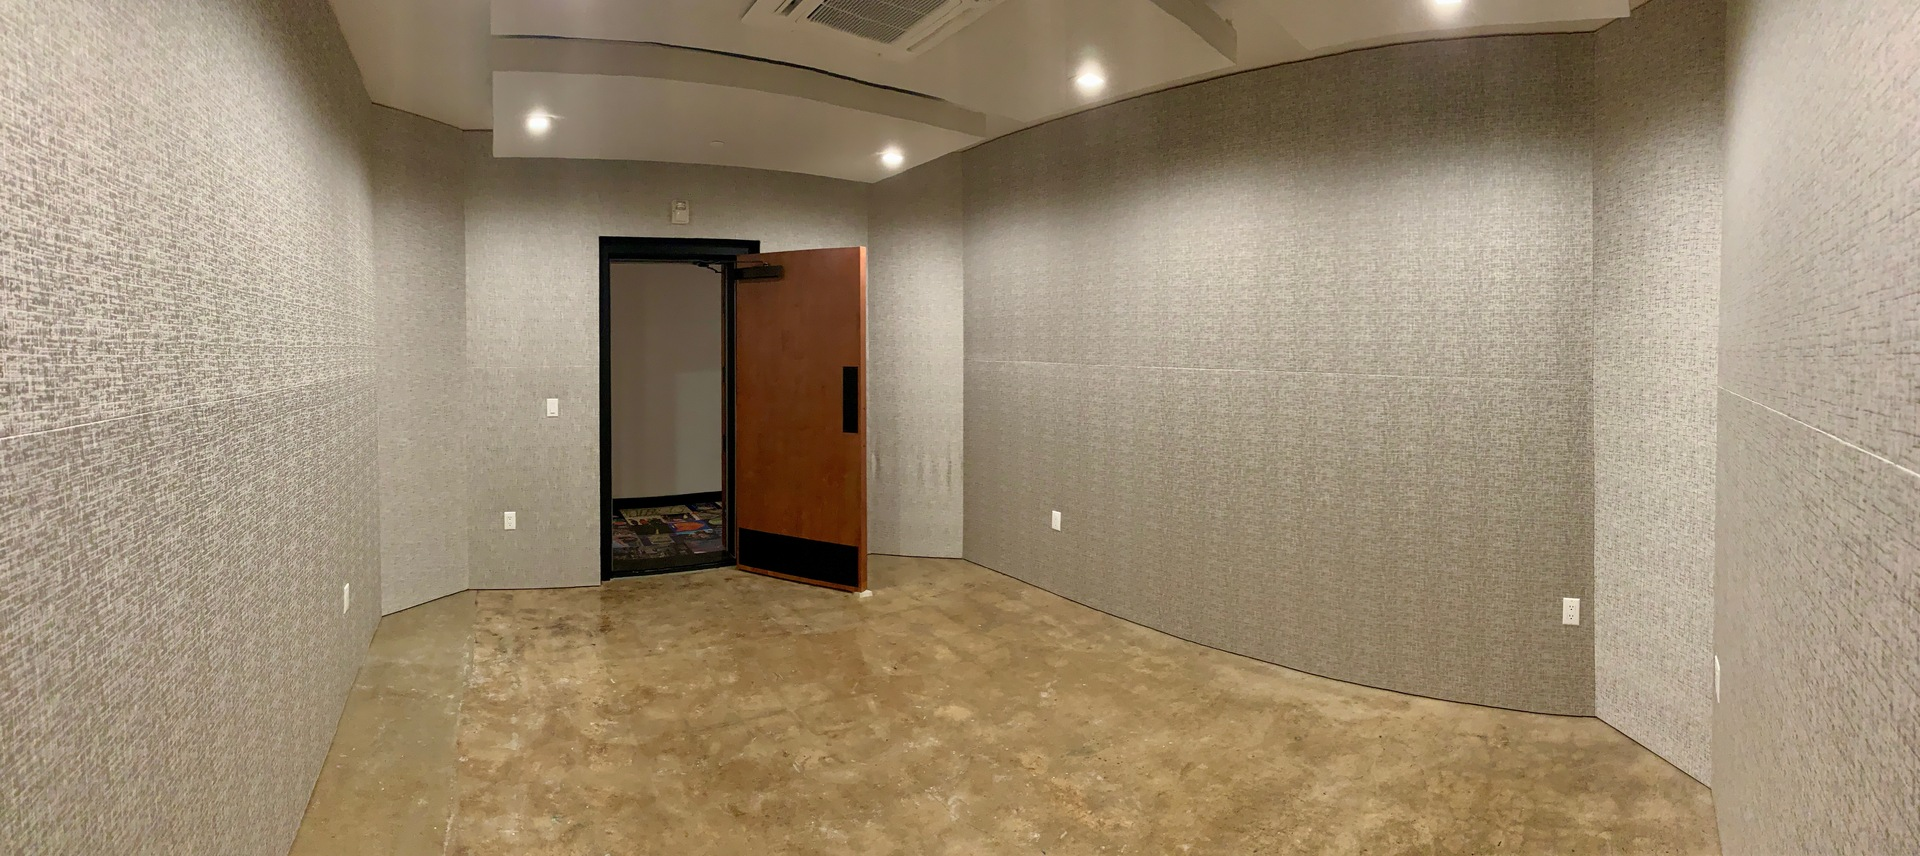 Connecting and inspiring musical innovators in a private, professional sanctuary of collective creativity is the LemonTree Mission.    LemonTree chose QuietRock® Sound Reducing Drywall to provide the sound isolation that was needed to create an environment conducive for music recording.